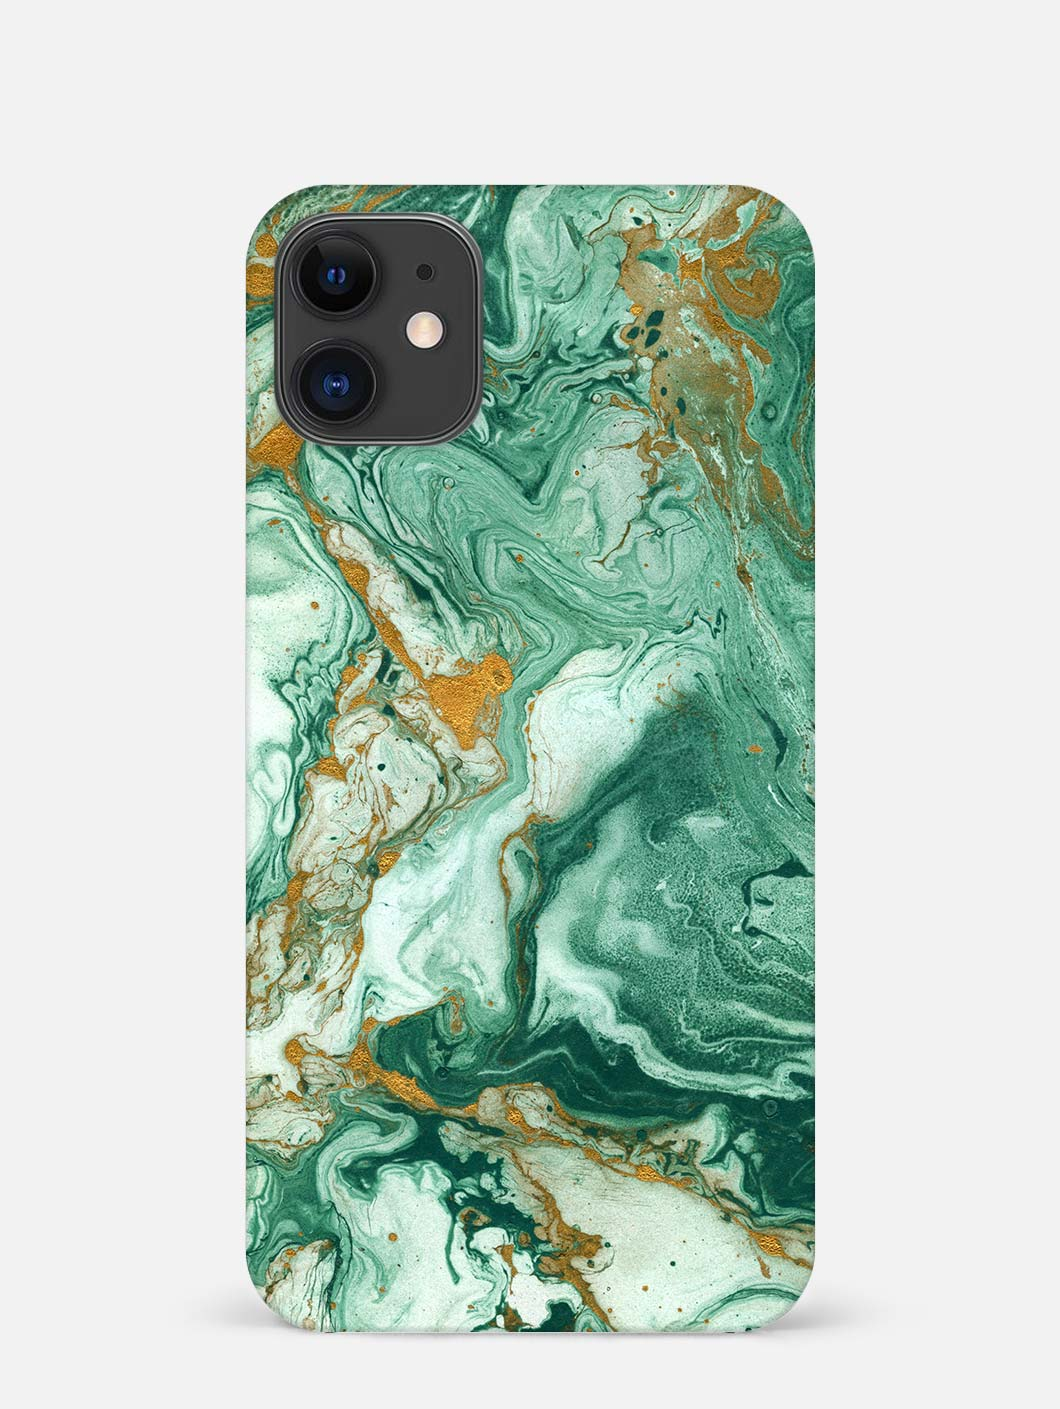 Green Paint iPhone 12 Mini Mobile Cover